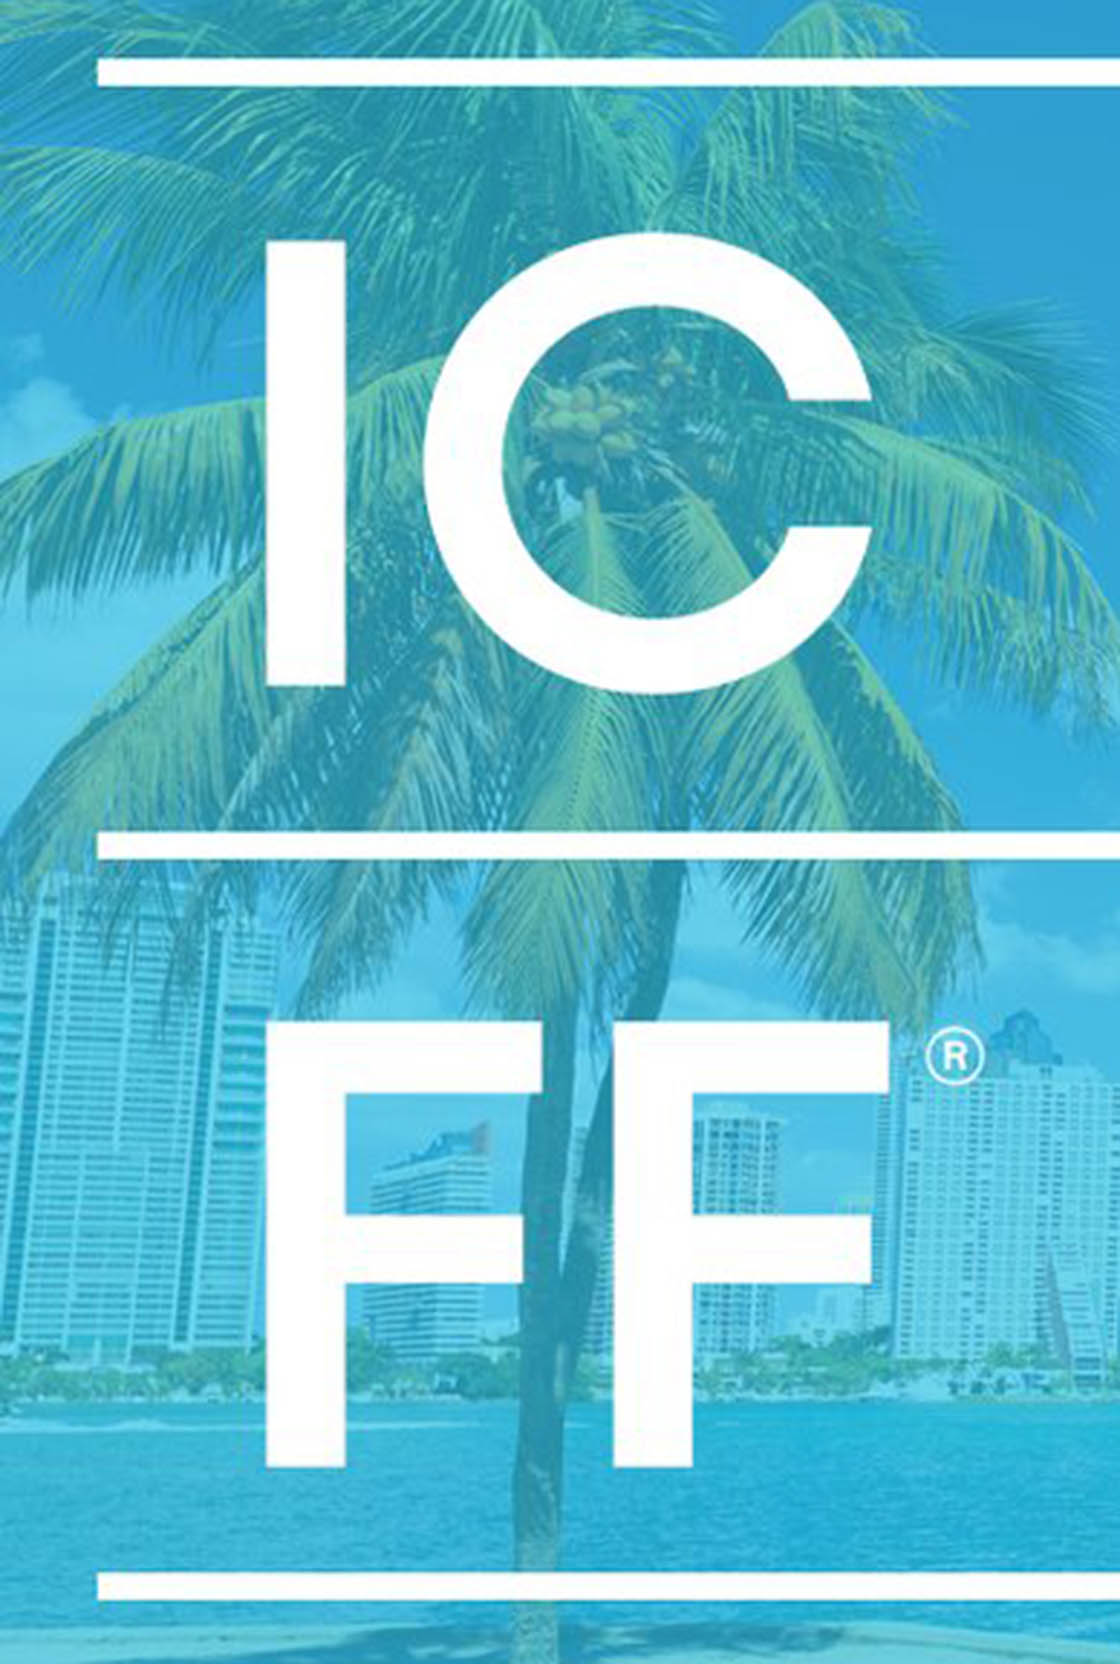 A Complete Guide to ICFF Miami 2017